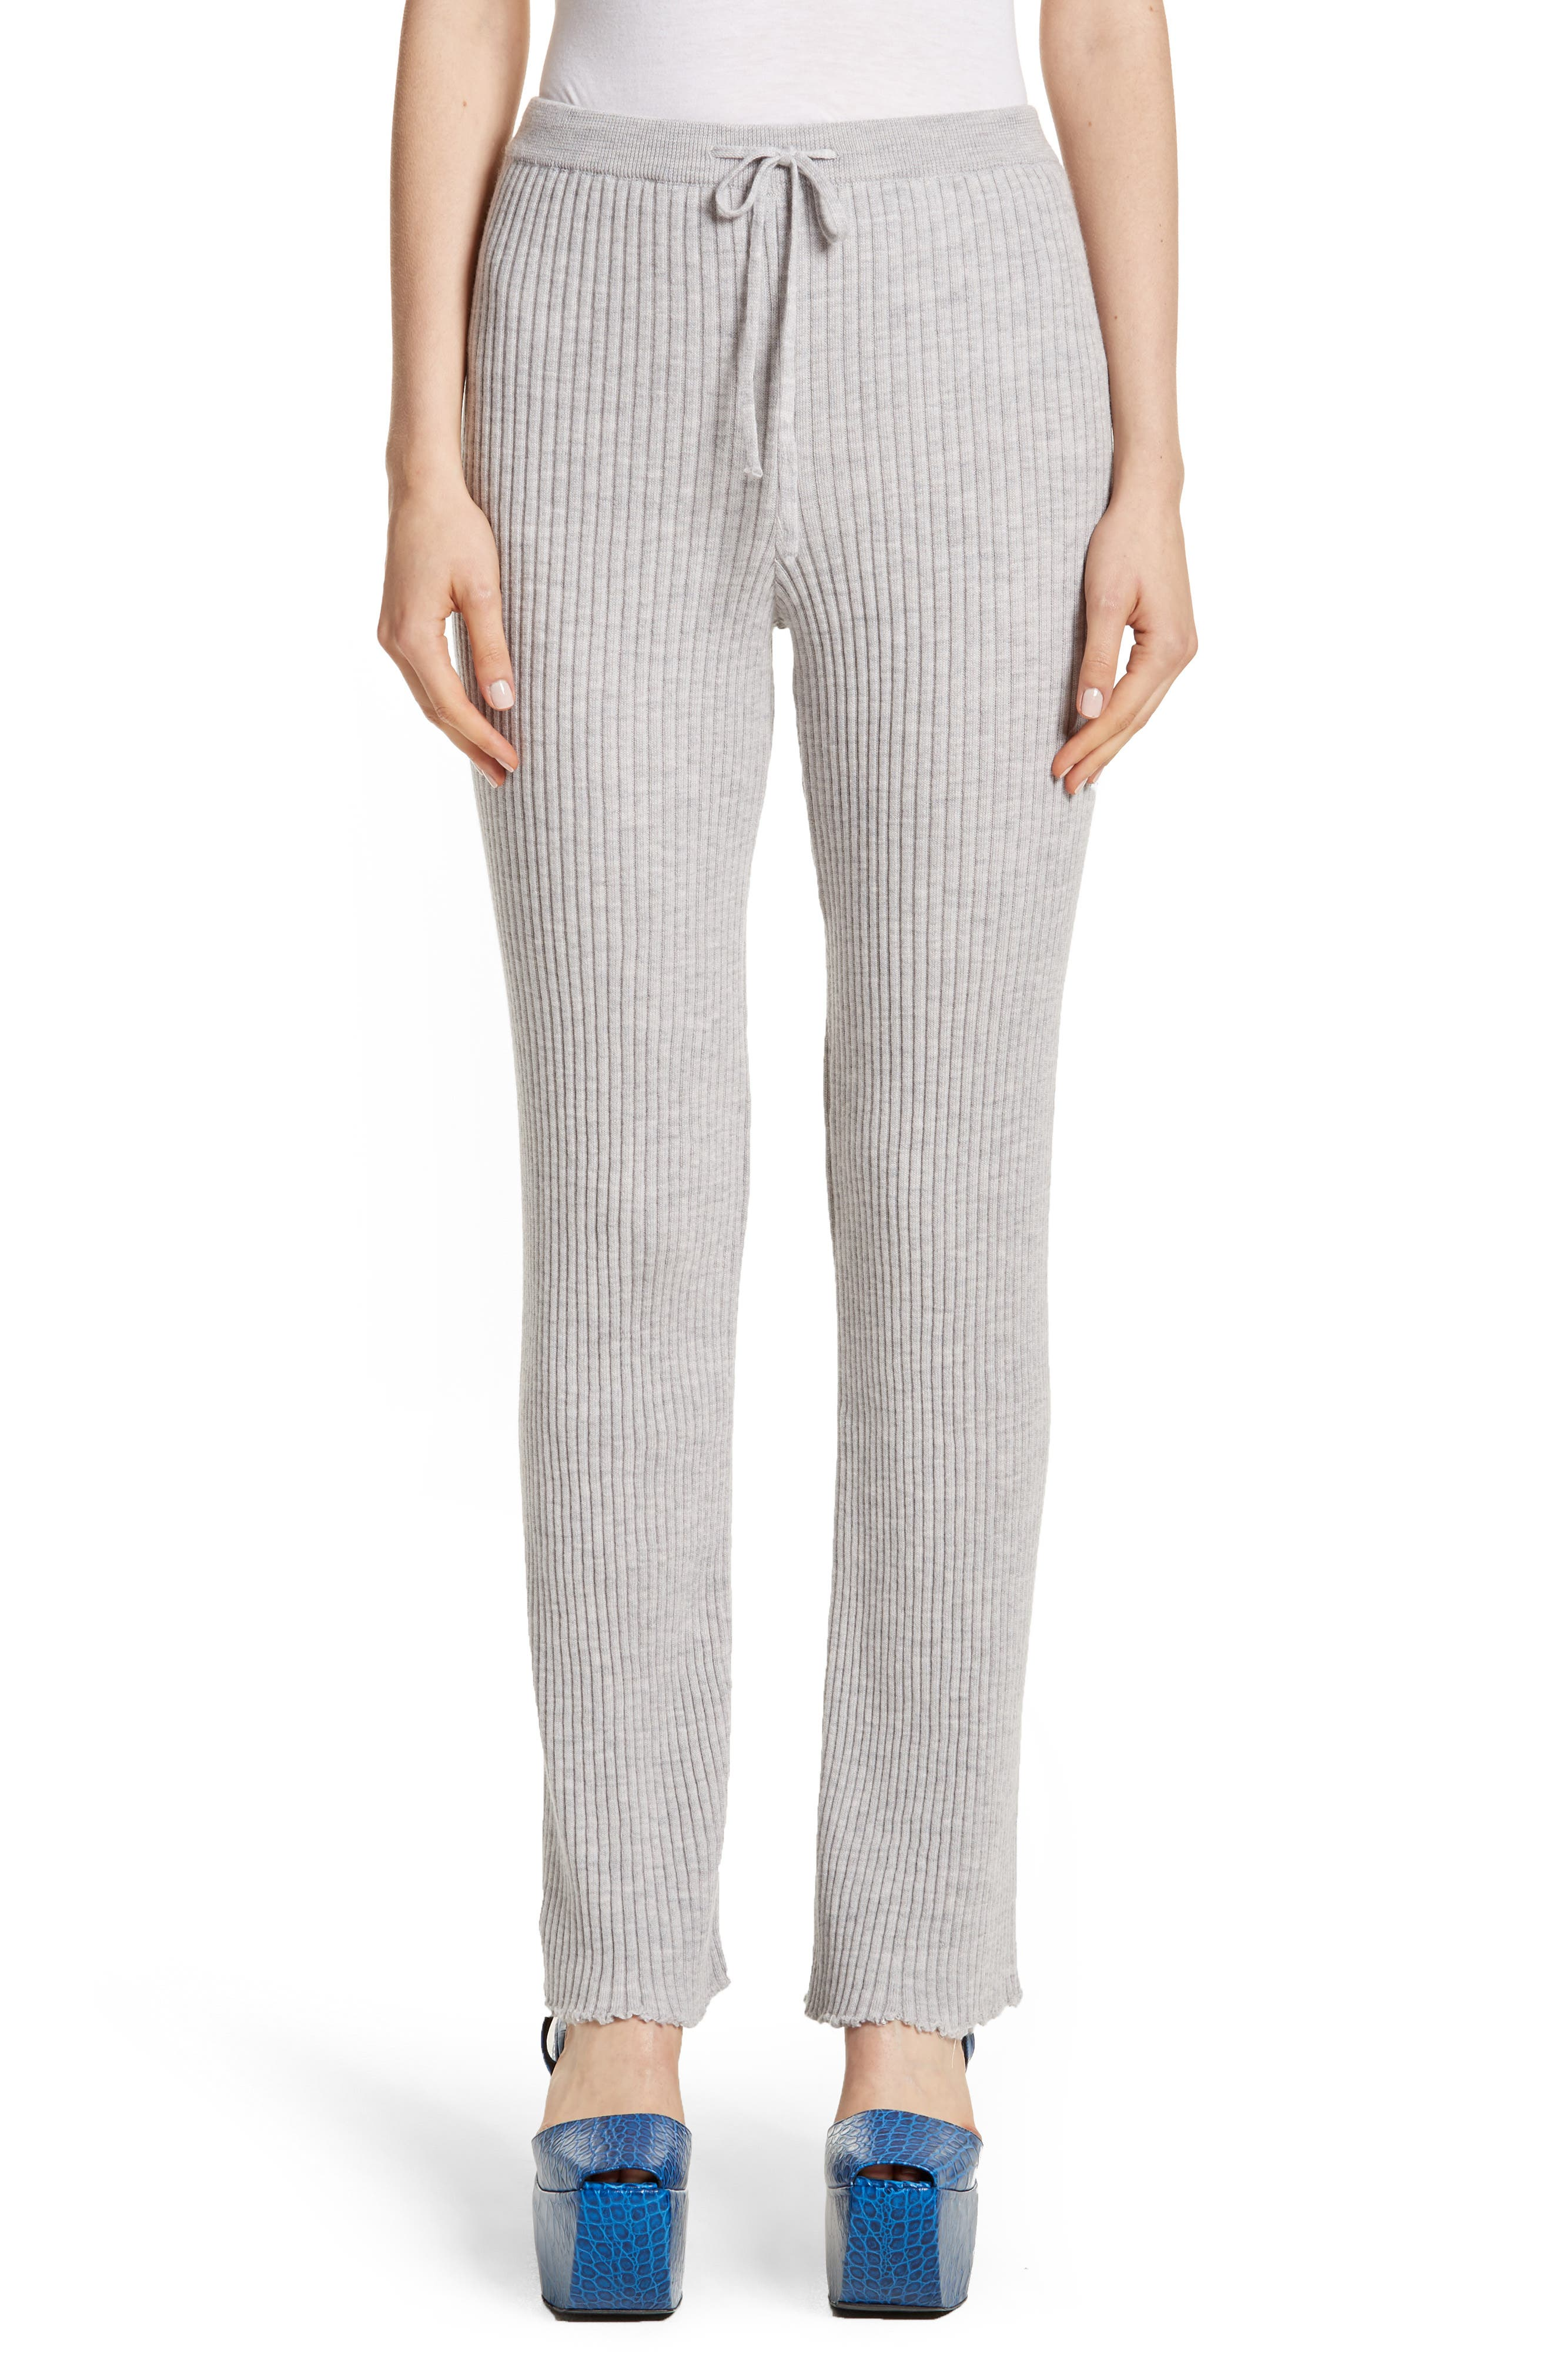 Alternate Image 1 Selected - Marques'Almeida Ribbed Drawstring Sweatpants